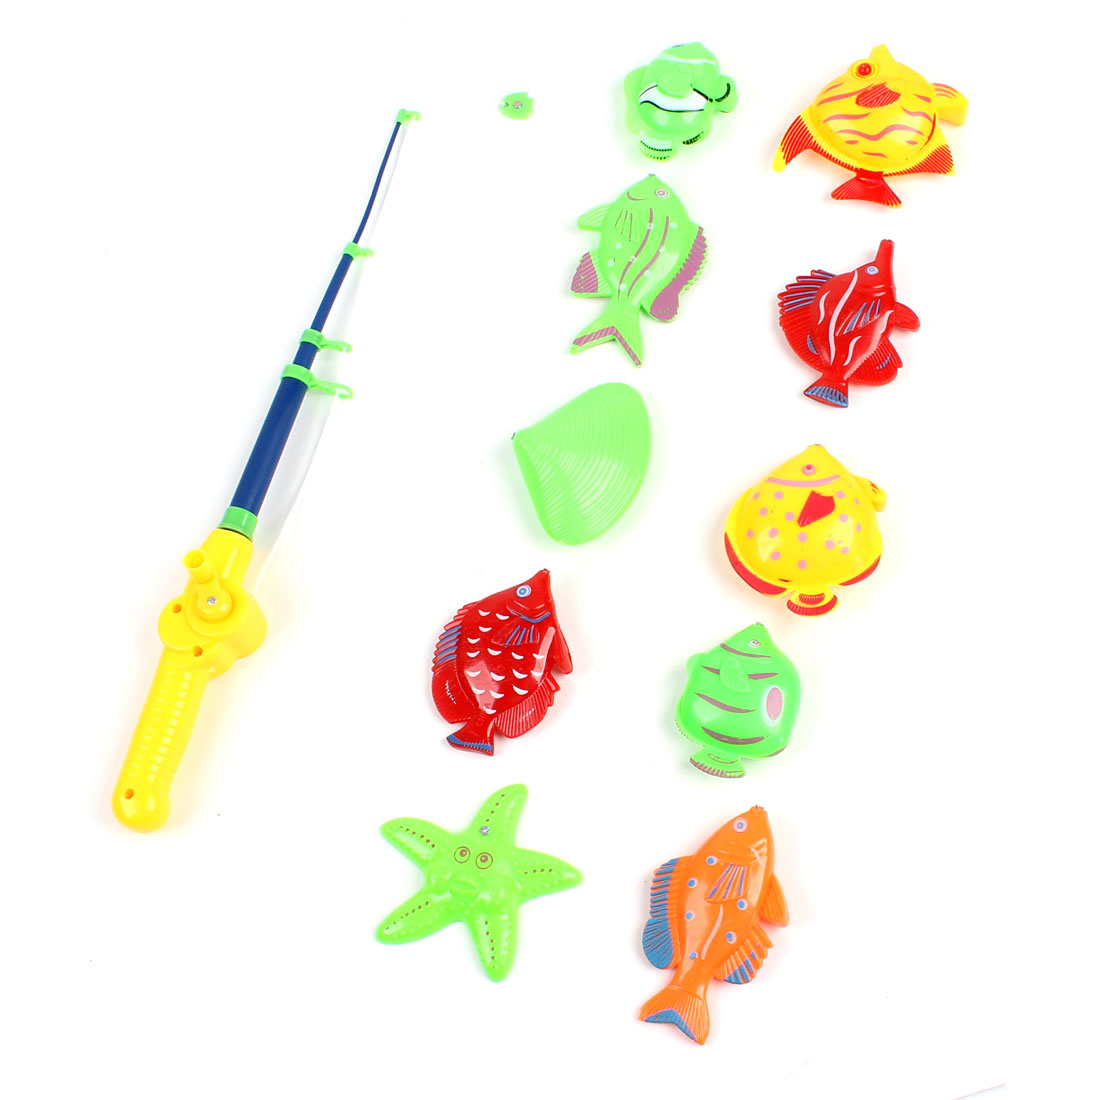 Children Kids 11 in 1 Colorful Plastic Fishing Rod Pole Fishes Toy Set